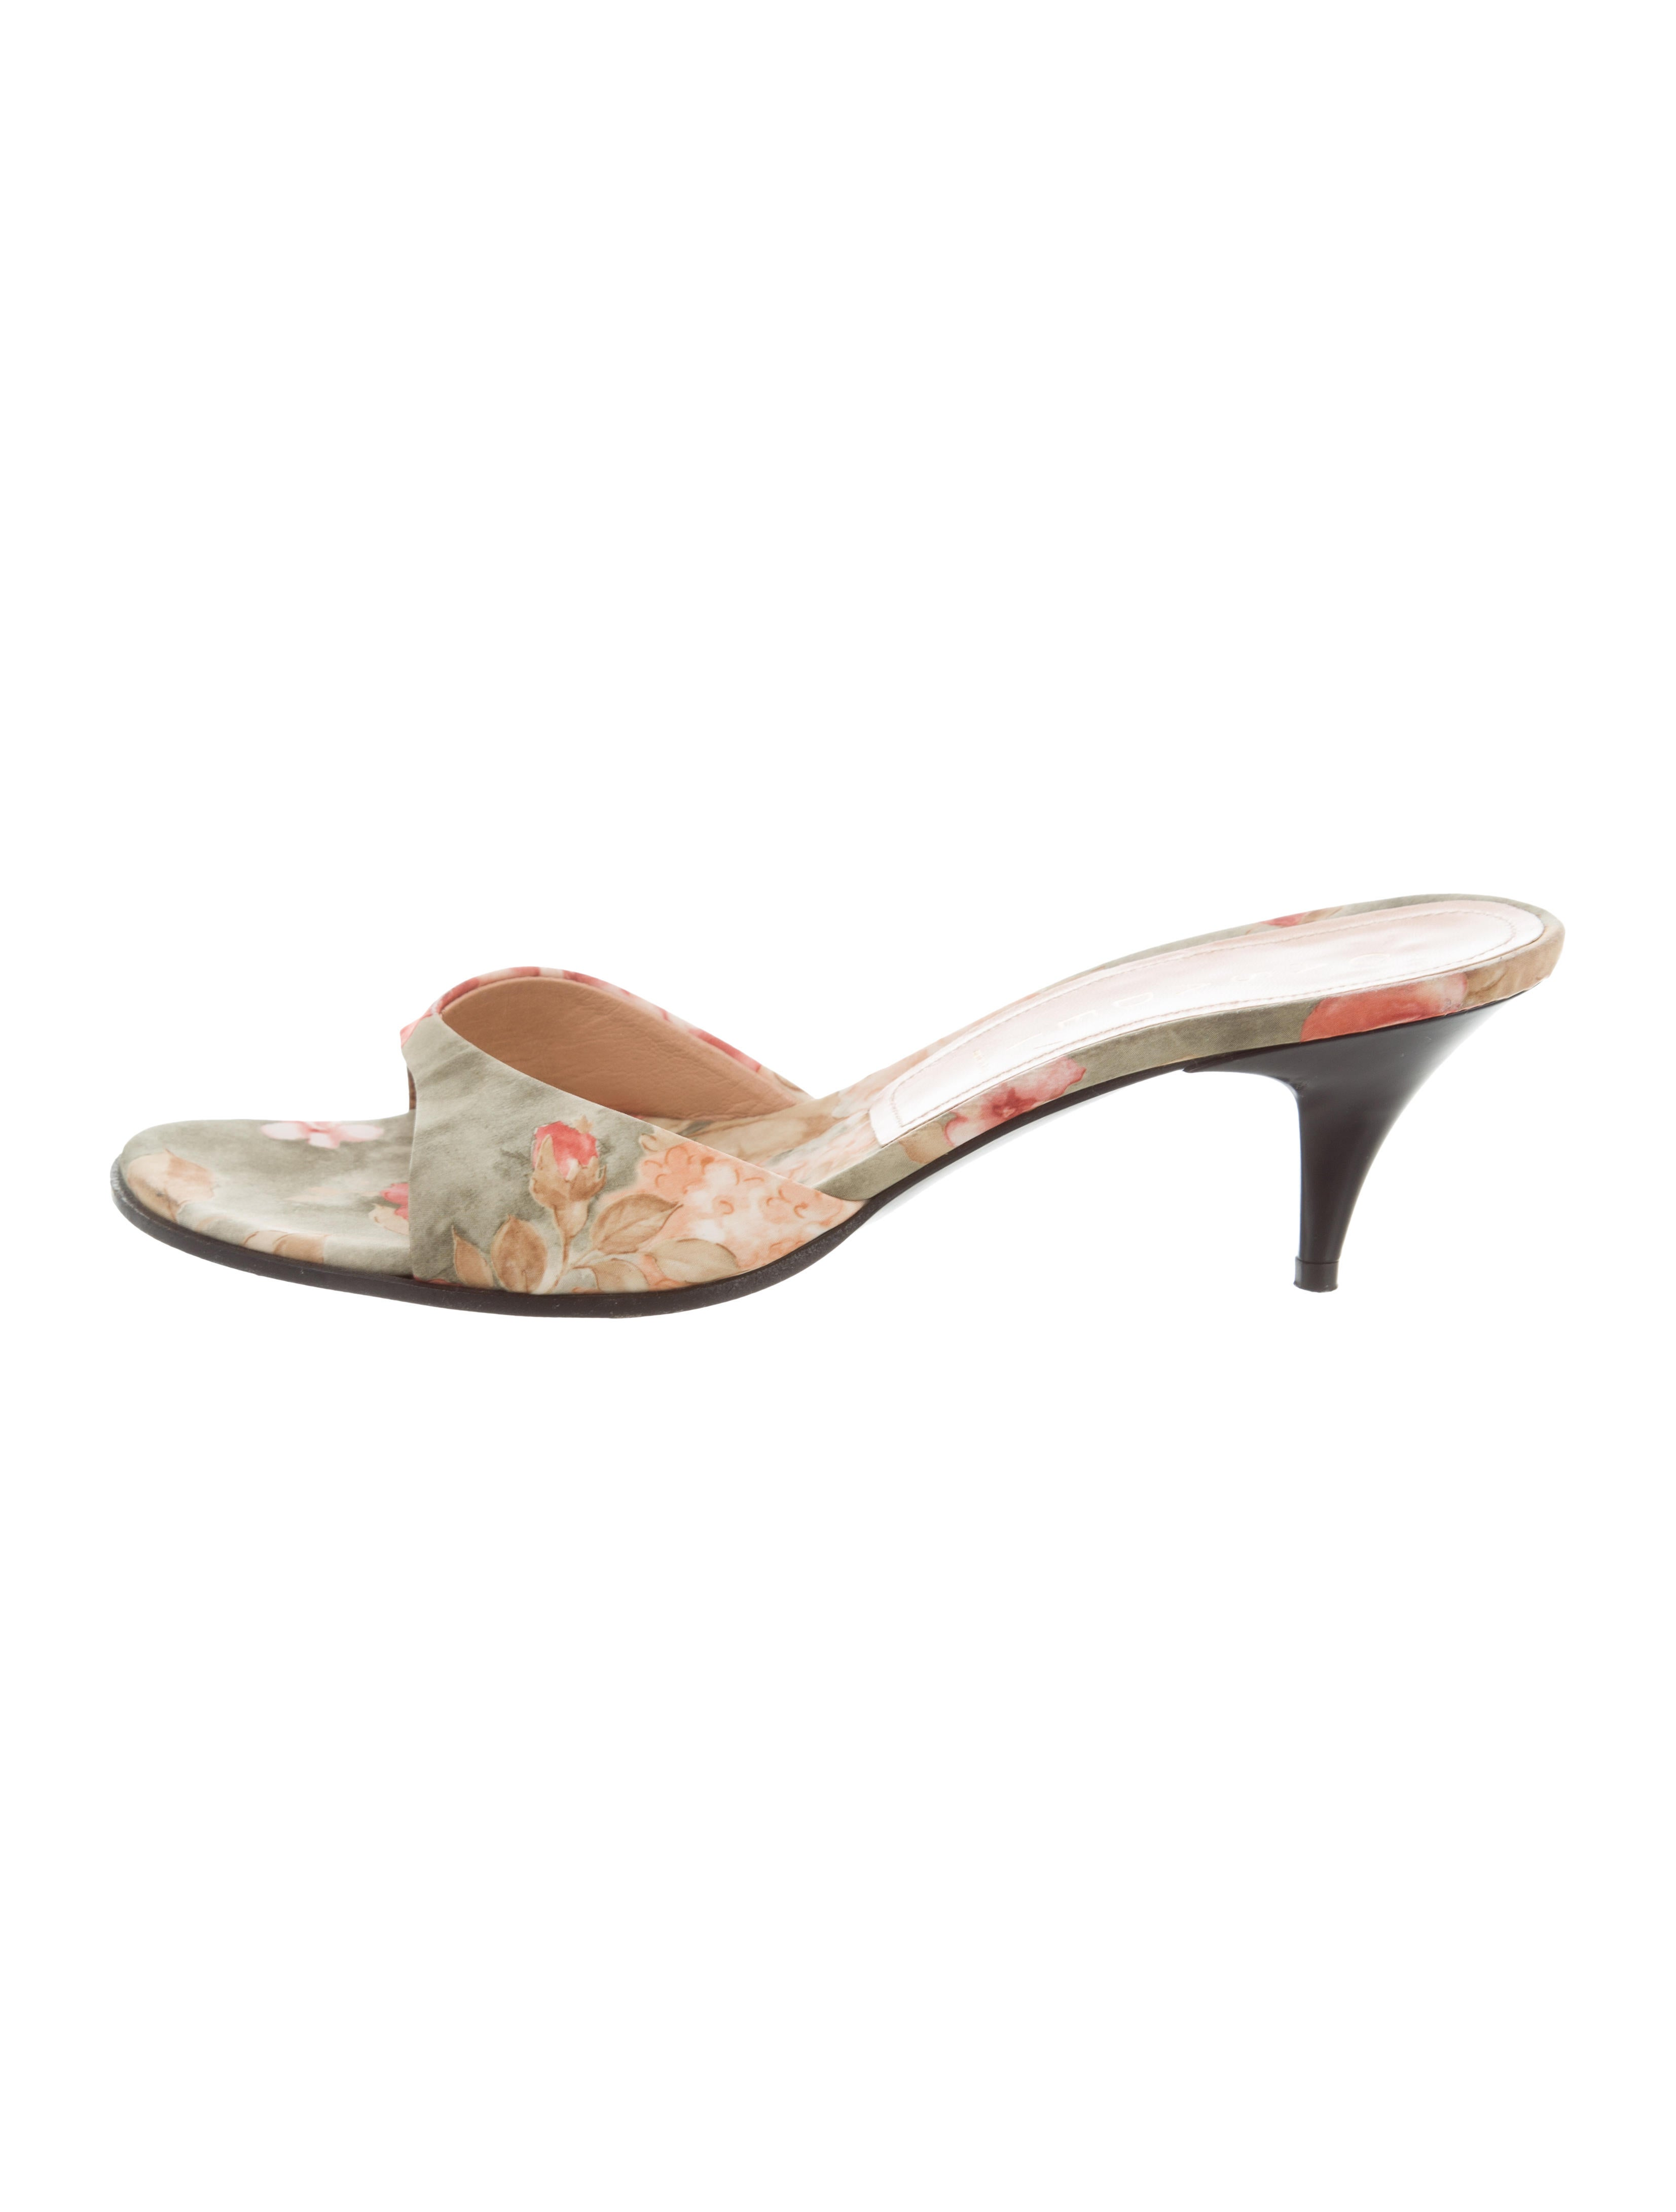 cheap sale the cheapest Casadei Floral Slide Sandals online sale factory outlet for sale buy cheap popular 3mABWw5